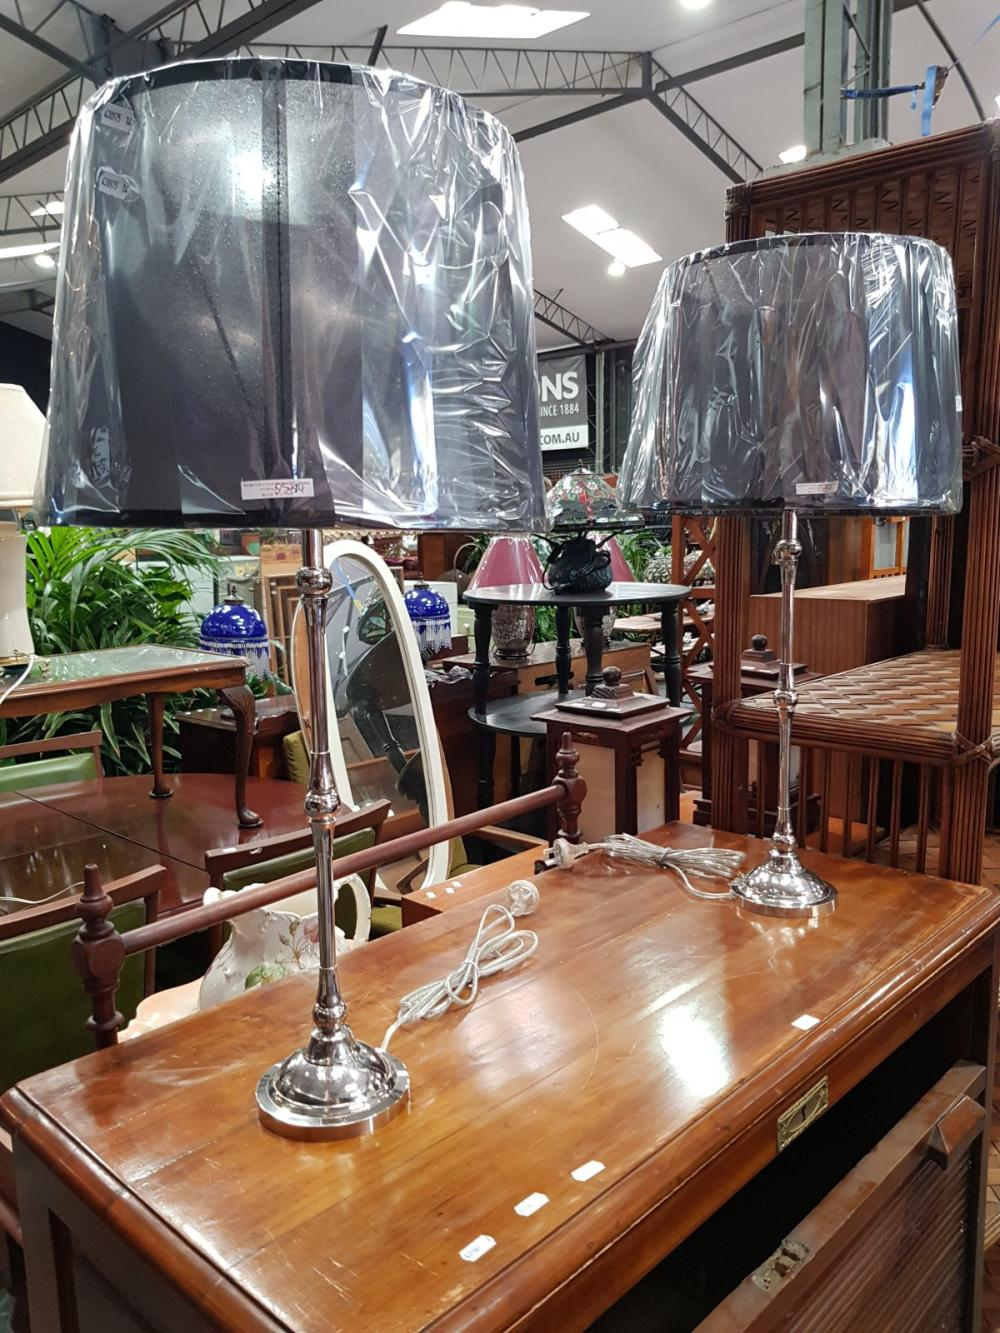 Pair of Tall Chrome Table Lamps (5584)